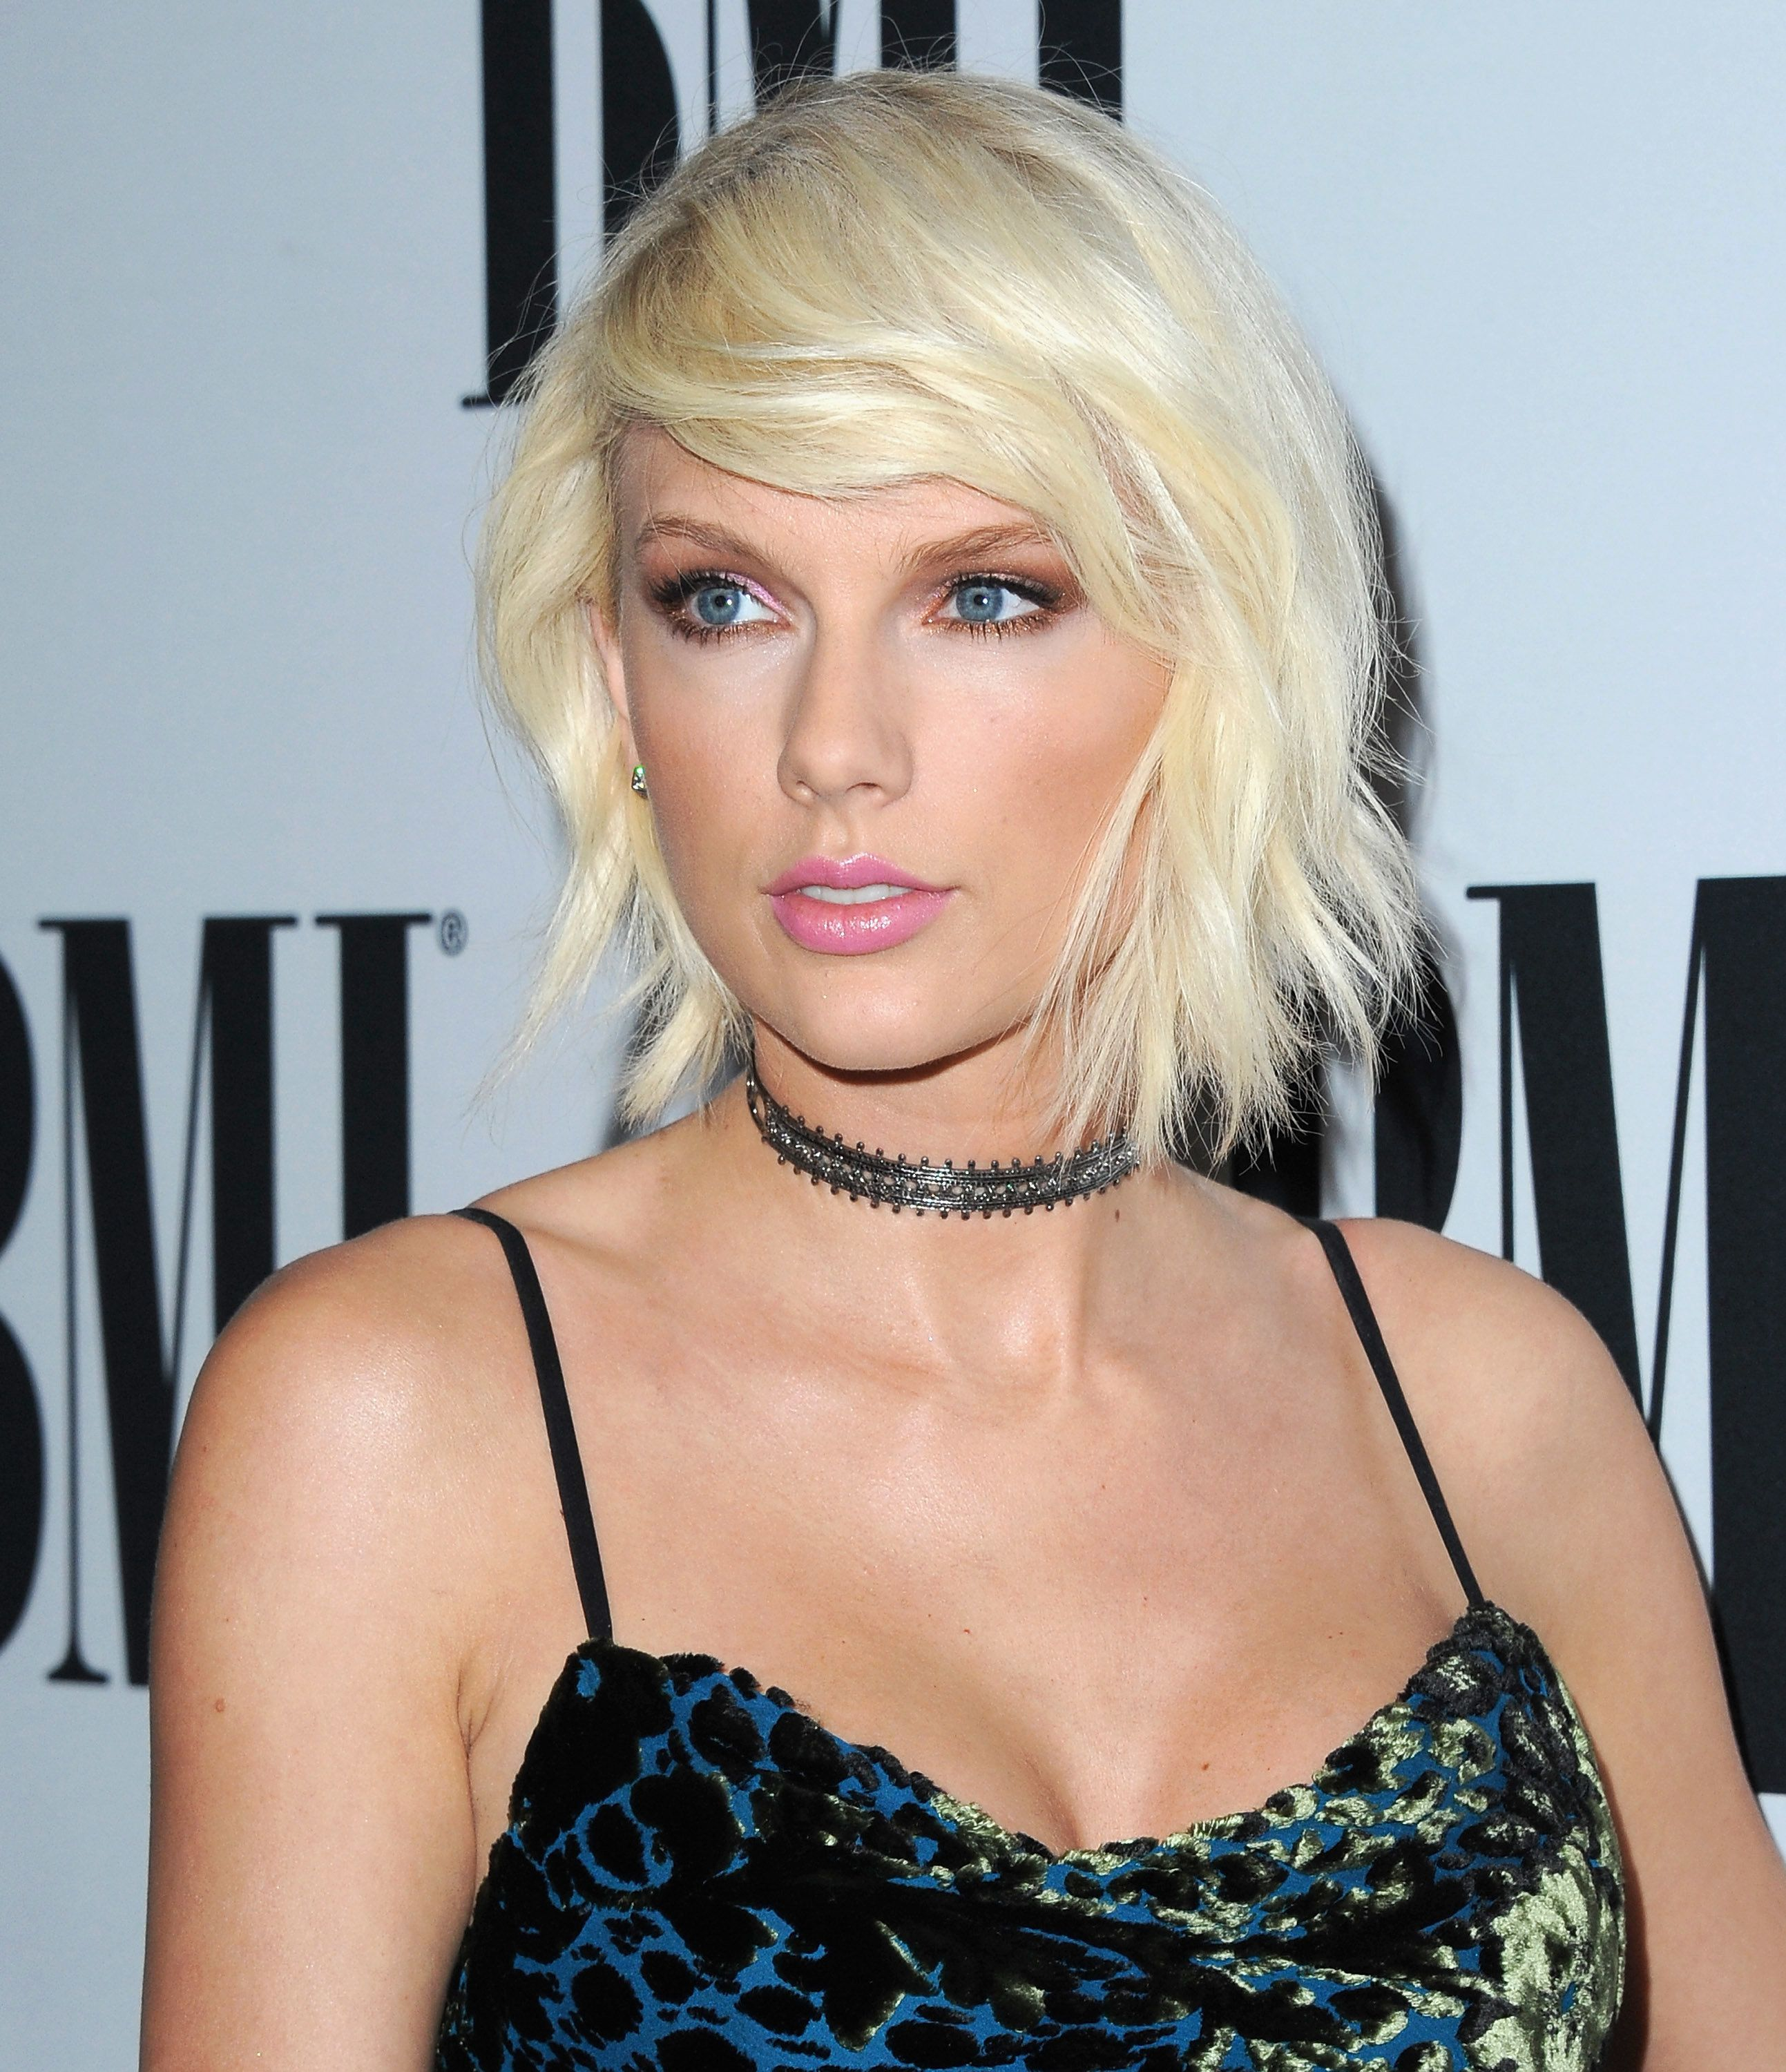 Taylor Swift To Testify Against Man She Says Groped